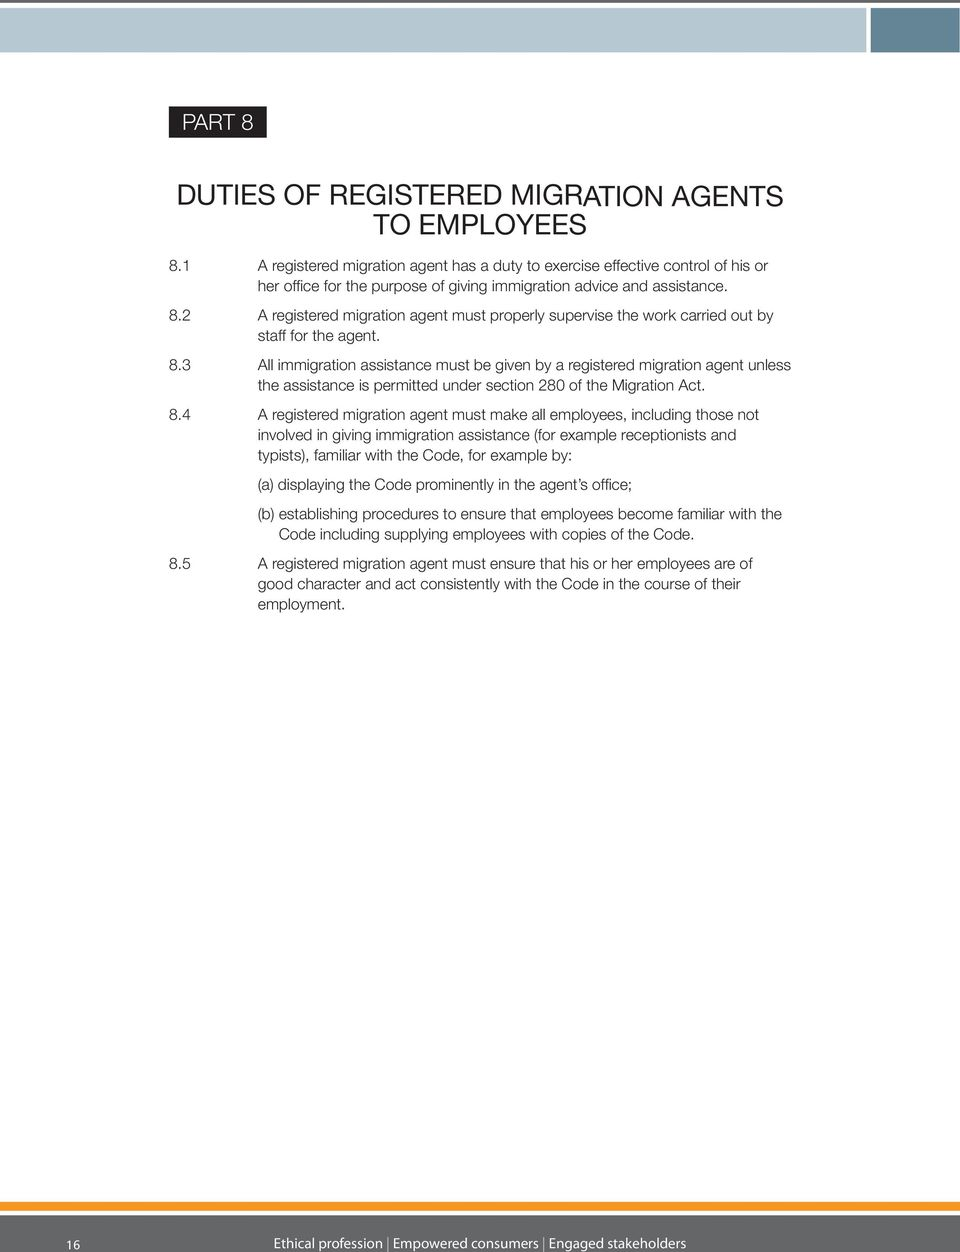 2 A registered migration agent must properly supervise the work carried out by staff for the agent. 8.